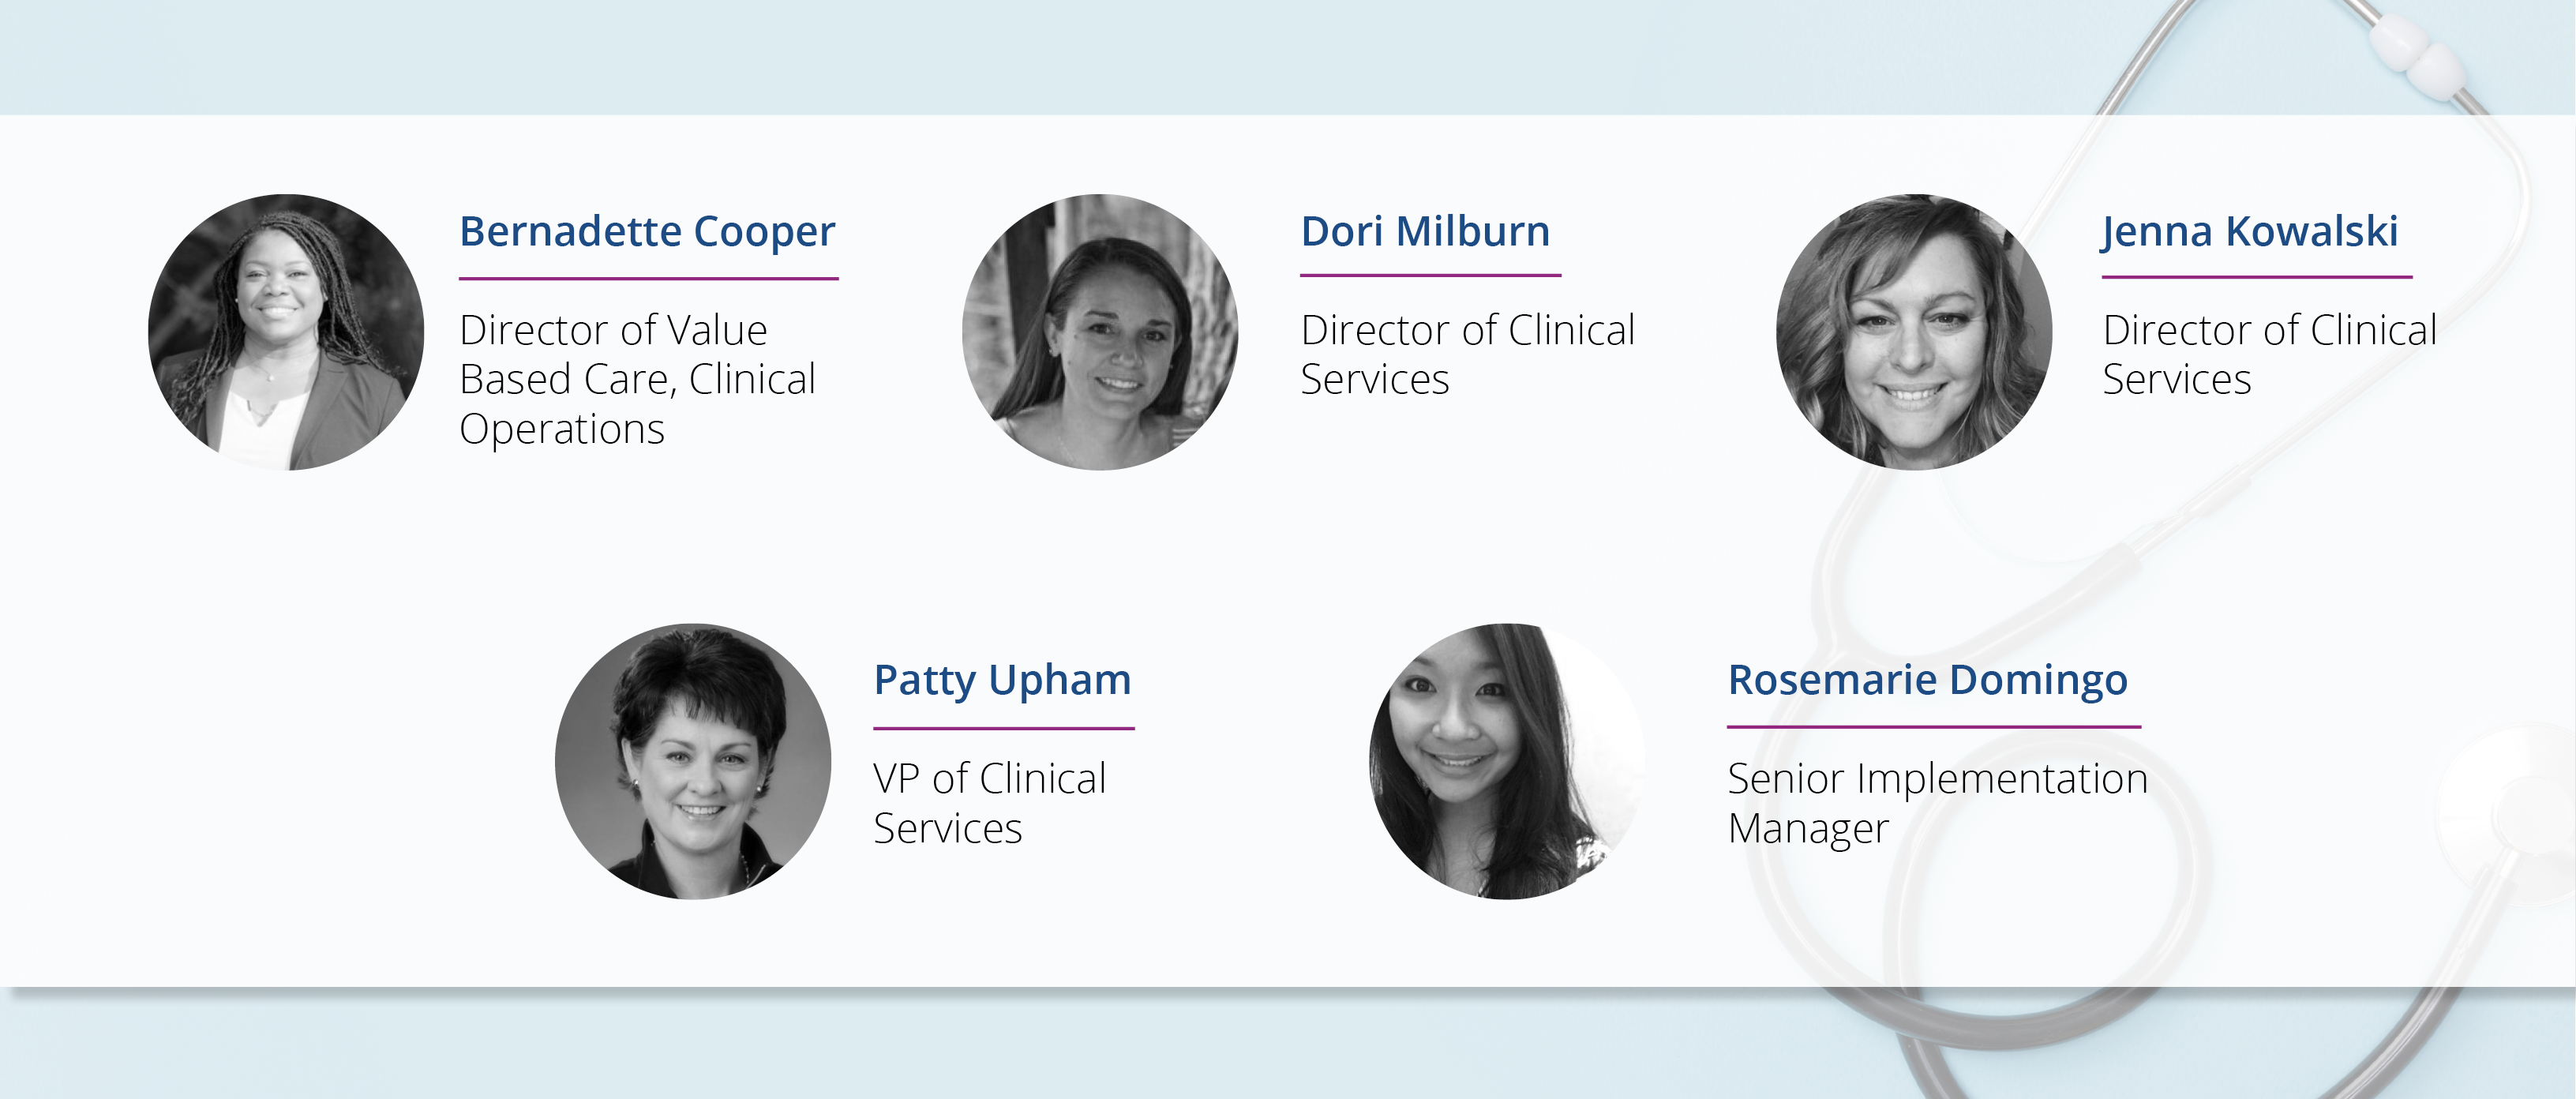 Clinical Services Team Roster Graphic